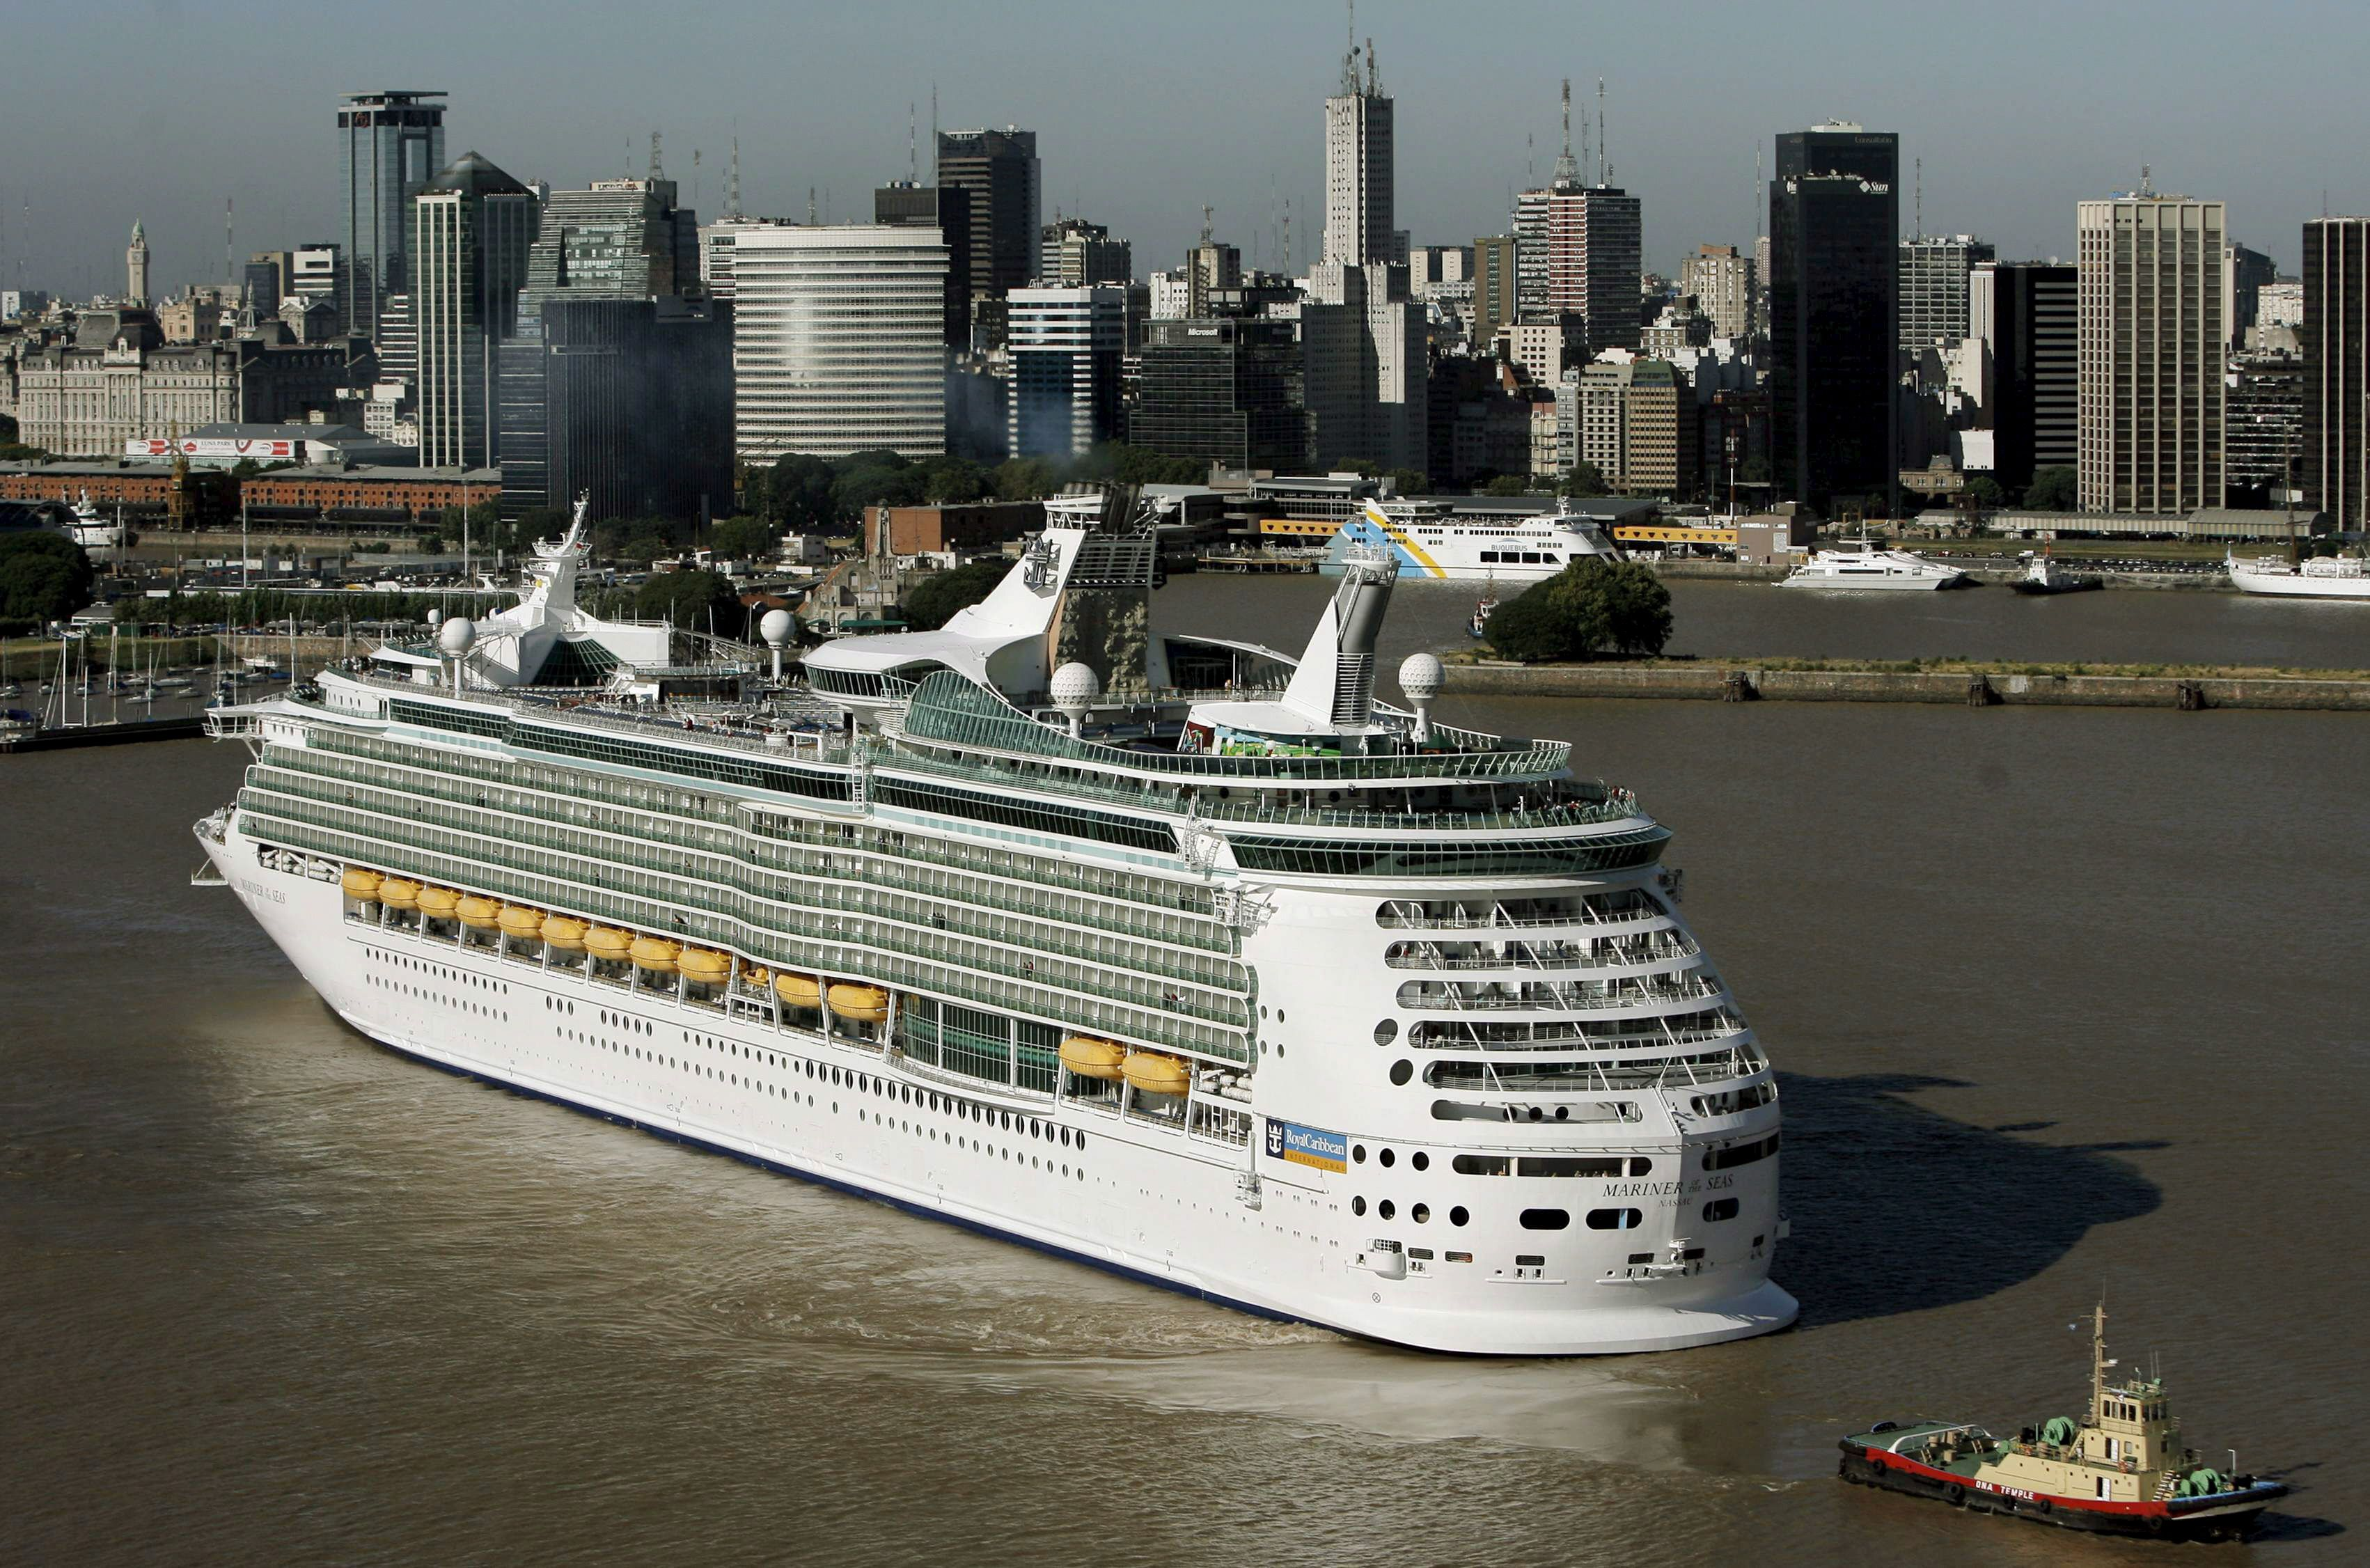 Slide 4 of 31: A View of the Cruise Liner 'Mariner of the Seas' on Its Arrival to the Port of Buenos Aires Argentina 'Mariner of the Seas' Which Belongs to Royal Caribbean Cruise Company Left From Puerto Ca±averal with 2 500 Persons on Board on 4 January and Will End the Crossing in Los Angeles on 3 February 2009 After 46 Days Journey Along North and South America the Cruise Liner is 311 M Long and 38 60 M Beam Some of Its Attractions Are an Ice Skating Rink a Golf Course of 19 Holes and a Basketball Court Argentina Buenos Aires